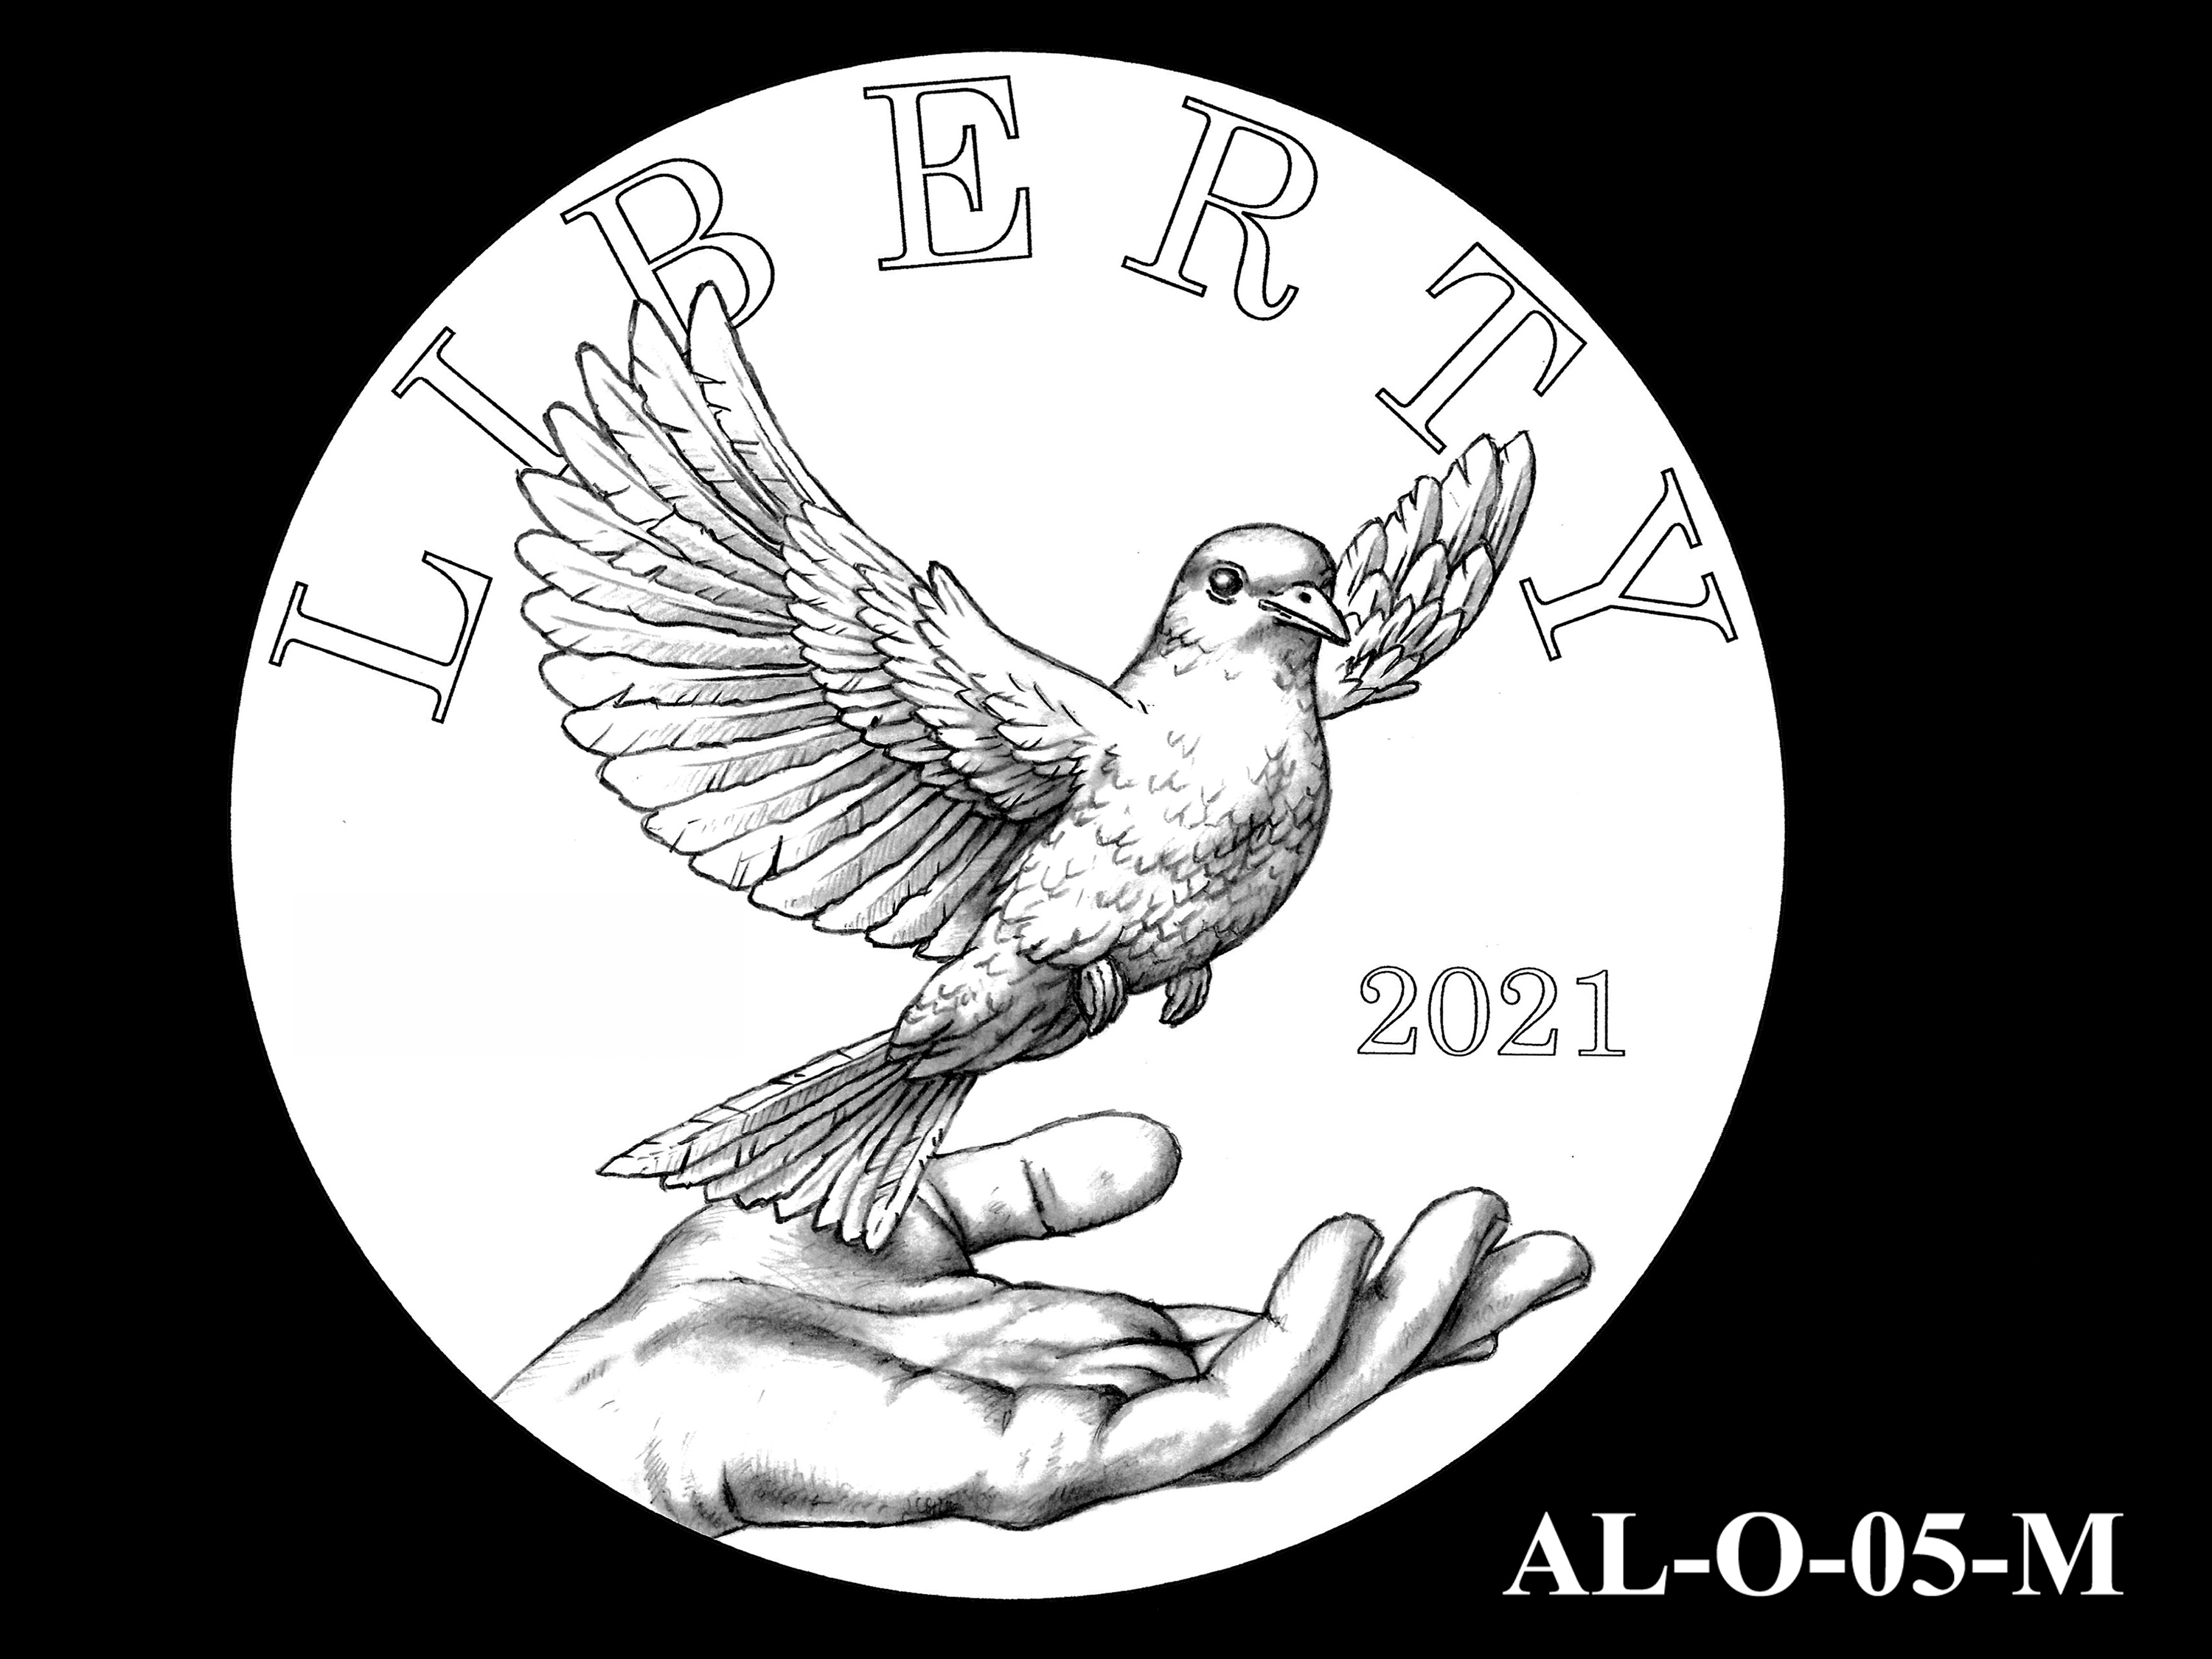 AL-O-05-M -- 2021 American Liberty Gold Coin and Silver Medal Program - Obverse